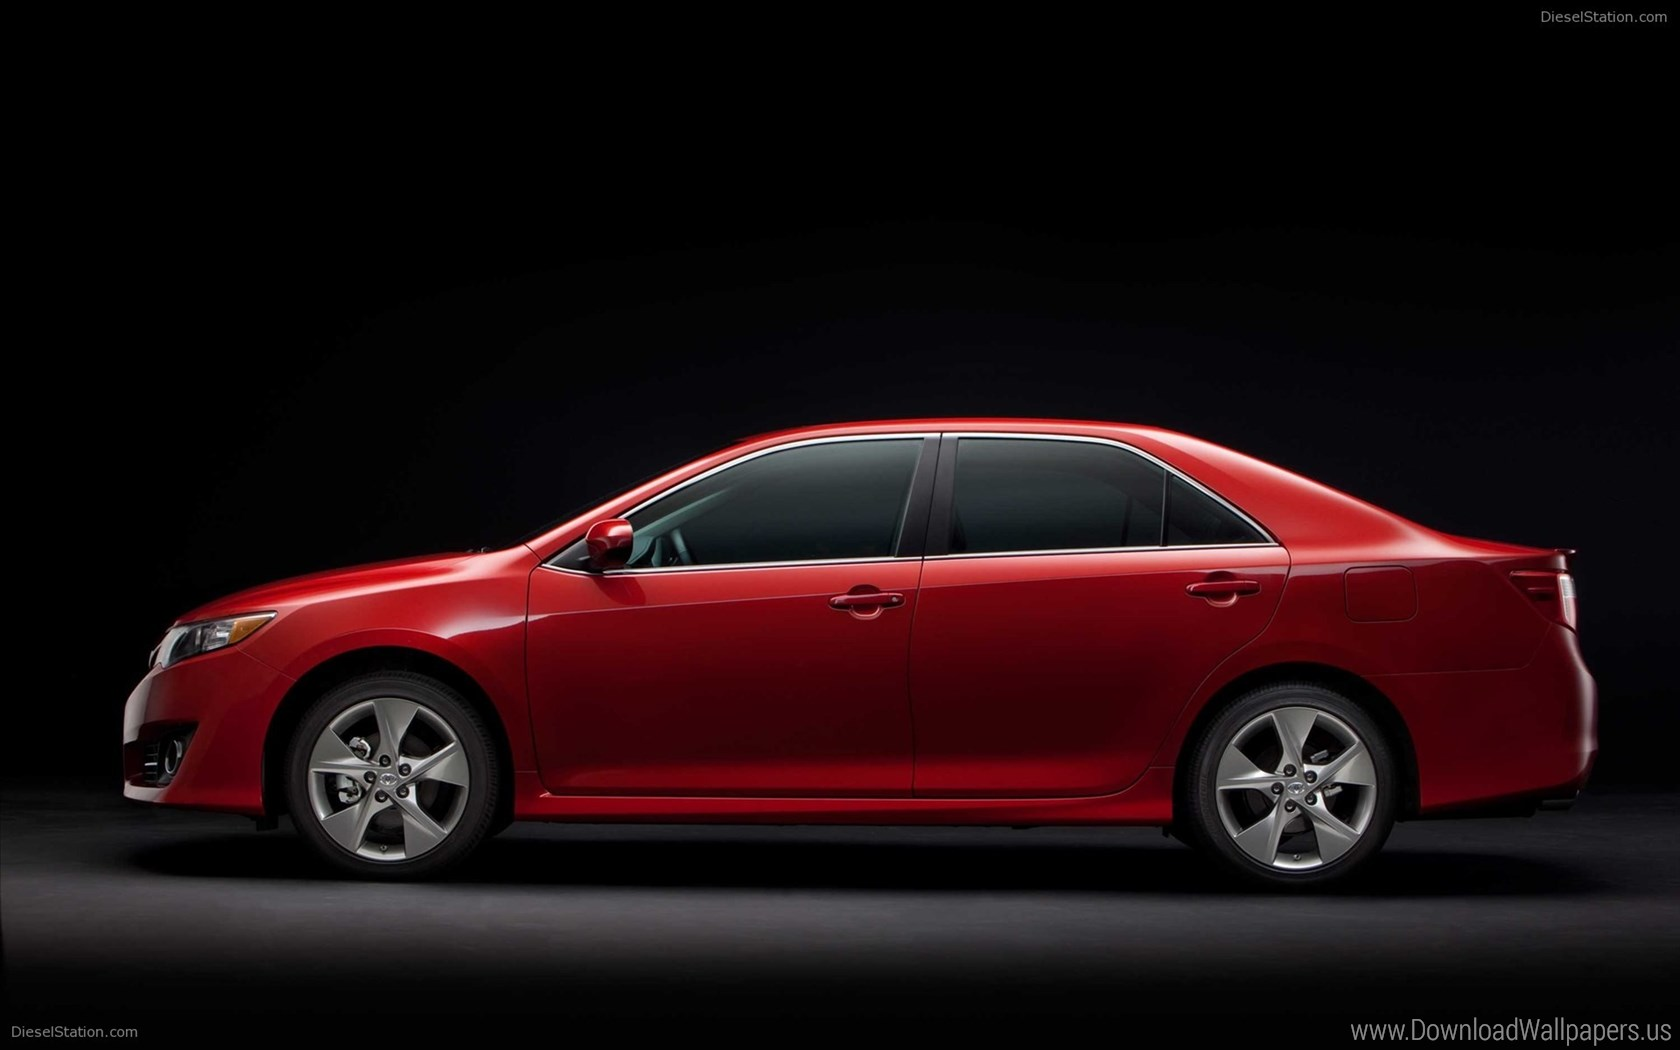 Download Widescreen - Toyota Camry 2014 Side View , HD Wallpaper & Backgrounds